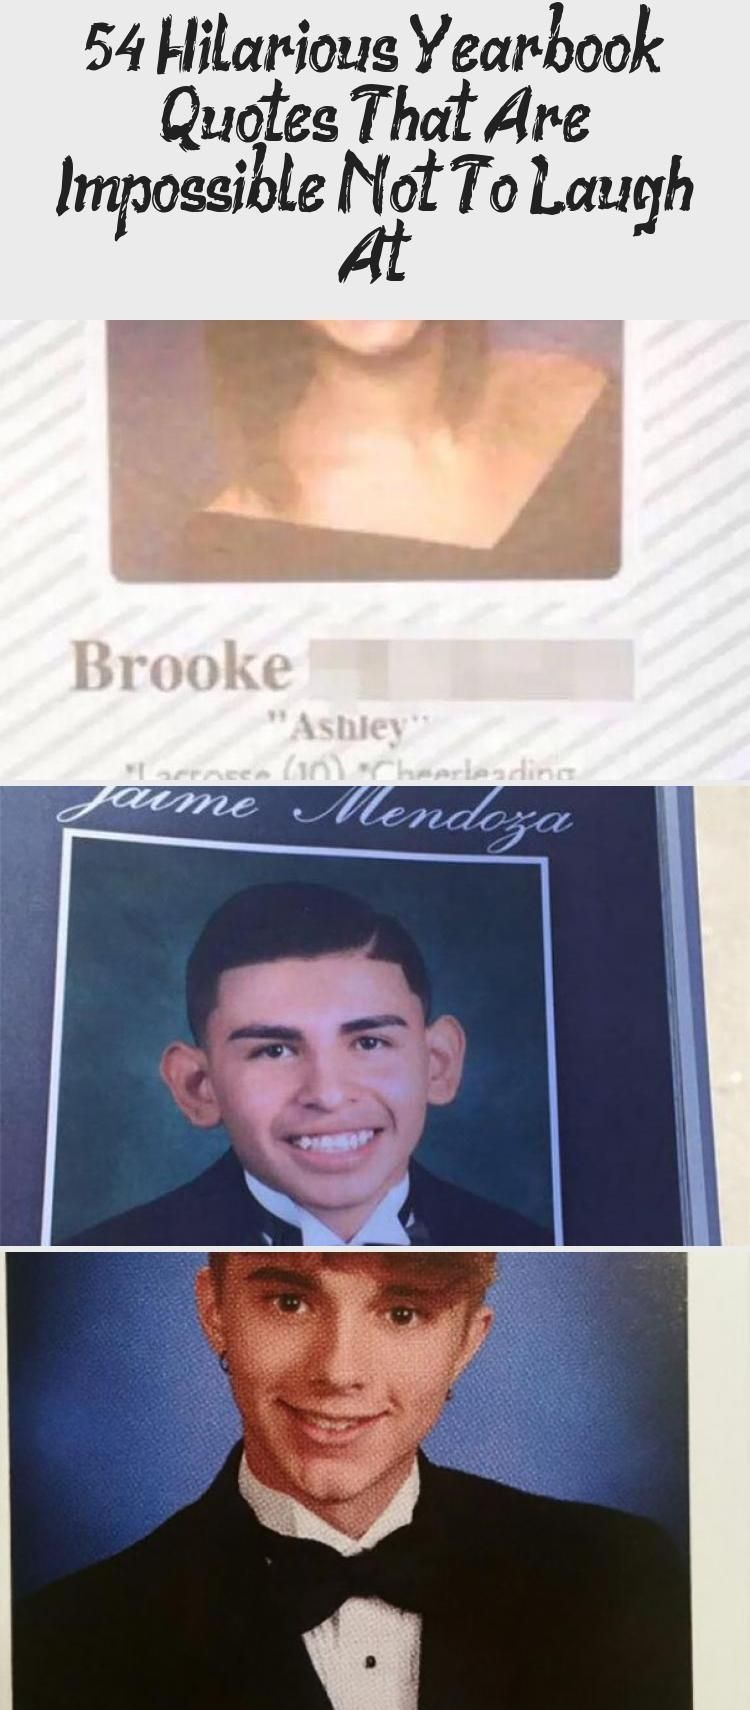 Funny Yearbook Quotes Hilarious Funny Yearbook Funny Yearbook Pictures Yearbook Quotes New Year Quotes Funny Hilarious